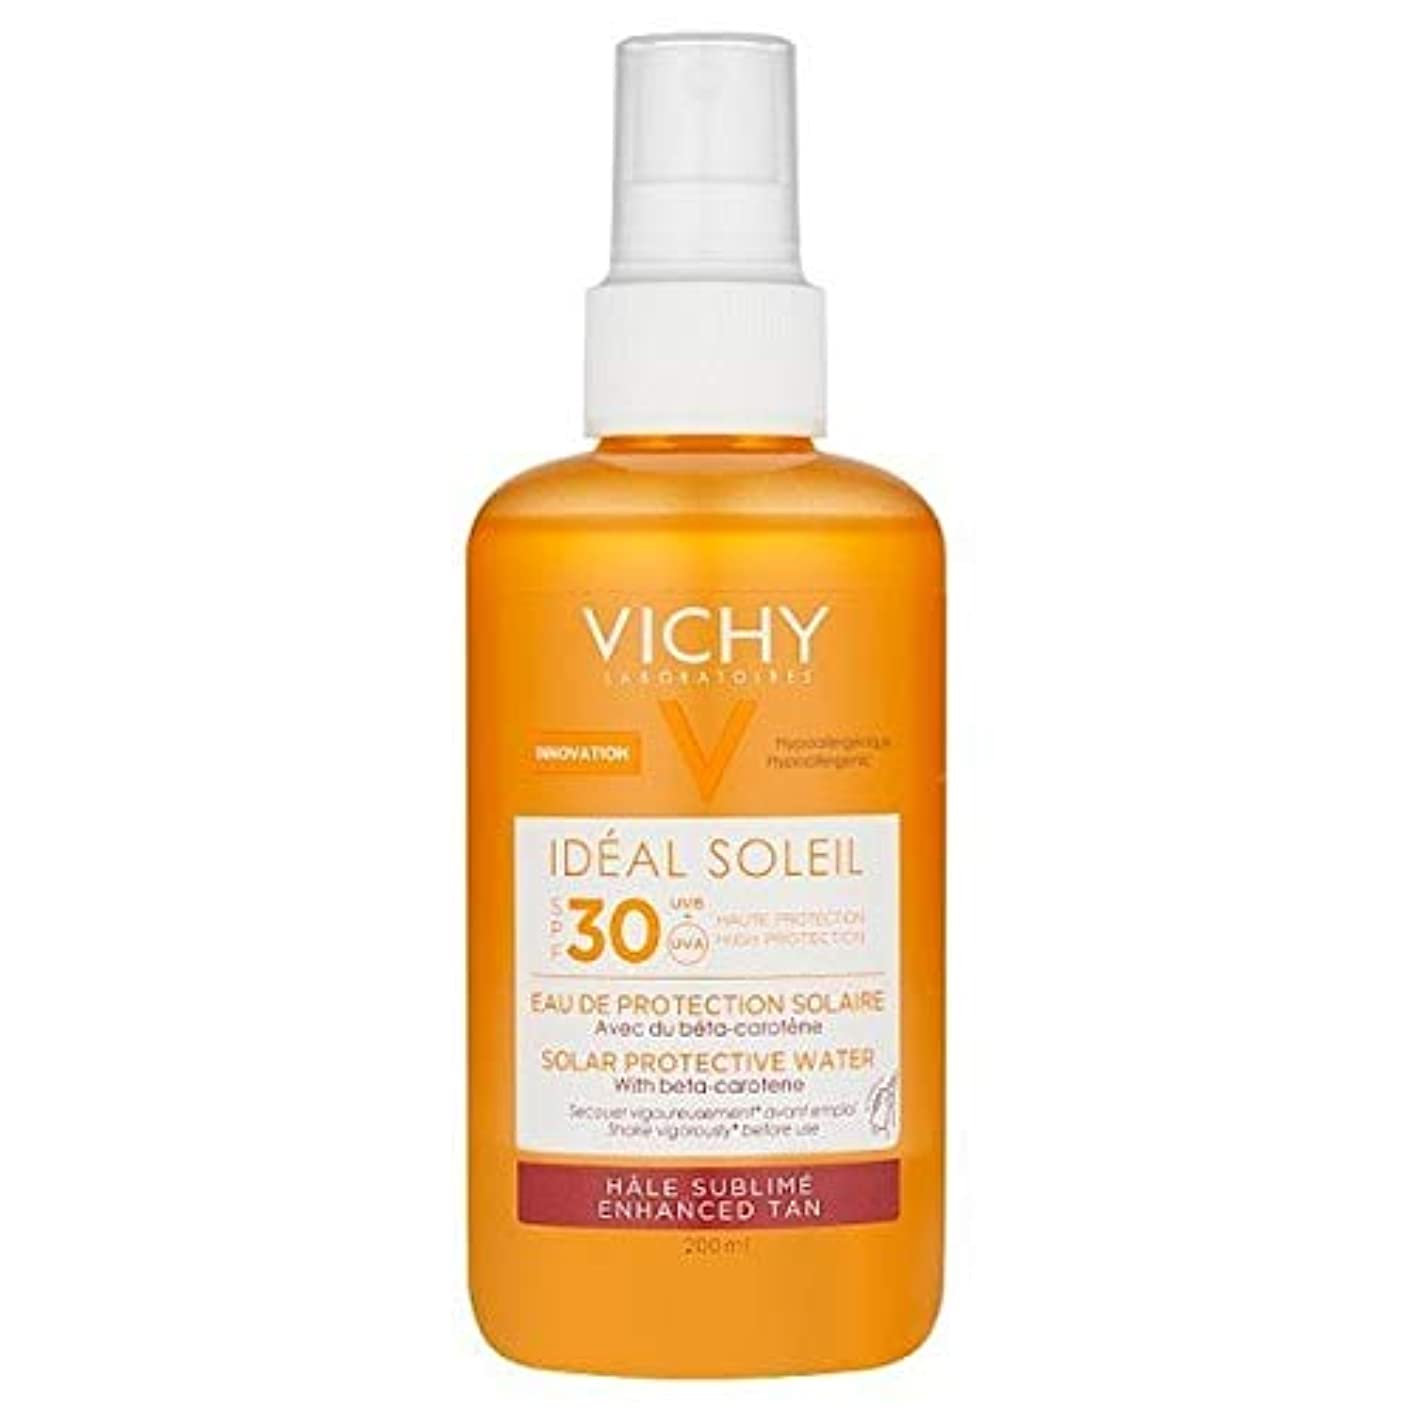 ラップおとなしいヒープ[Vichy ] ヴィシー理想的ソレイユ日焼け日焼け止め水Spf30の200ミリリットル - VICHY Ideal Soleil Tanning Sun Protection Water SPF30 200ml [並行輸入品]